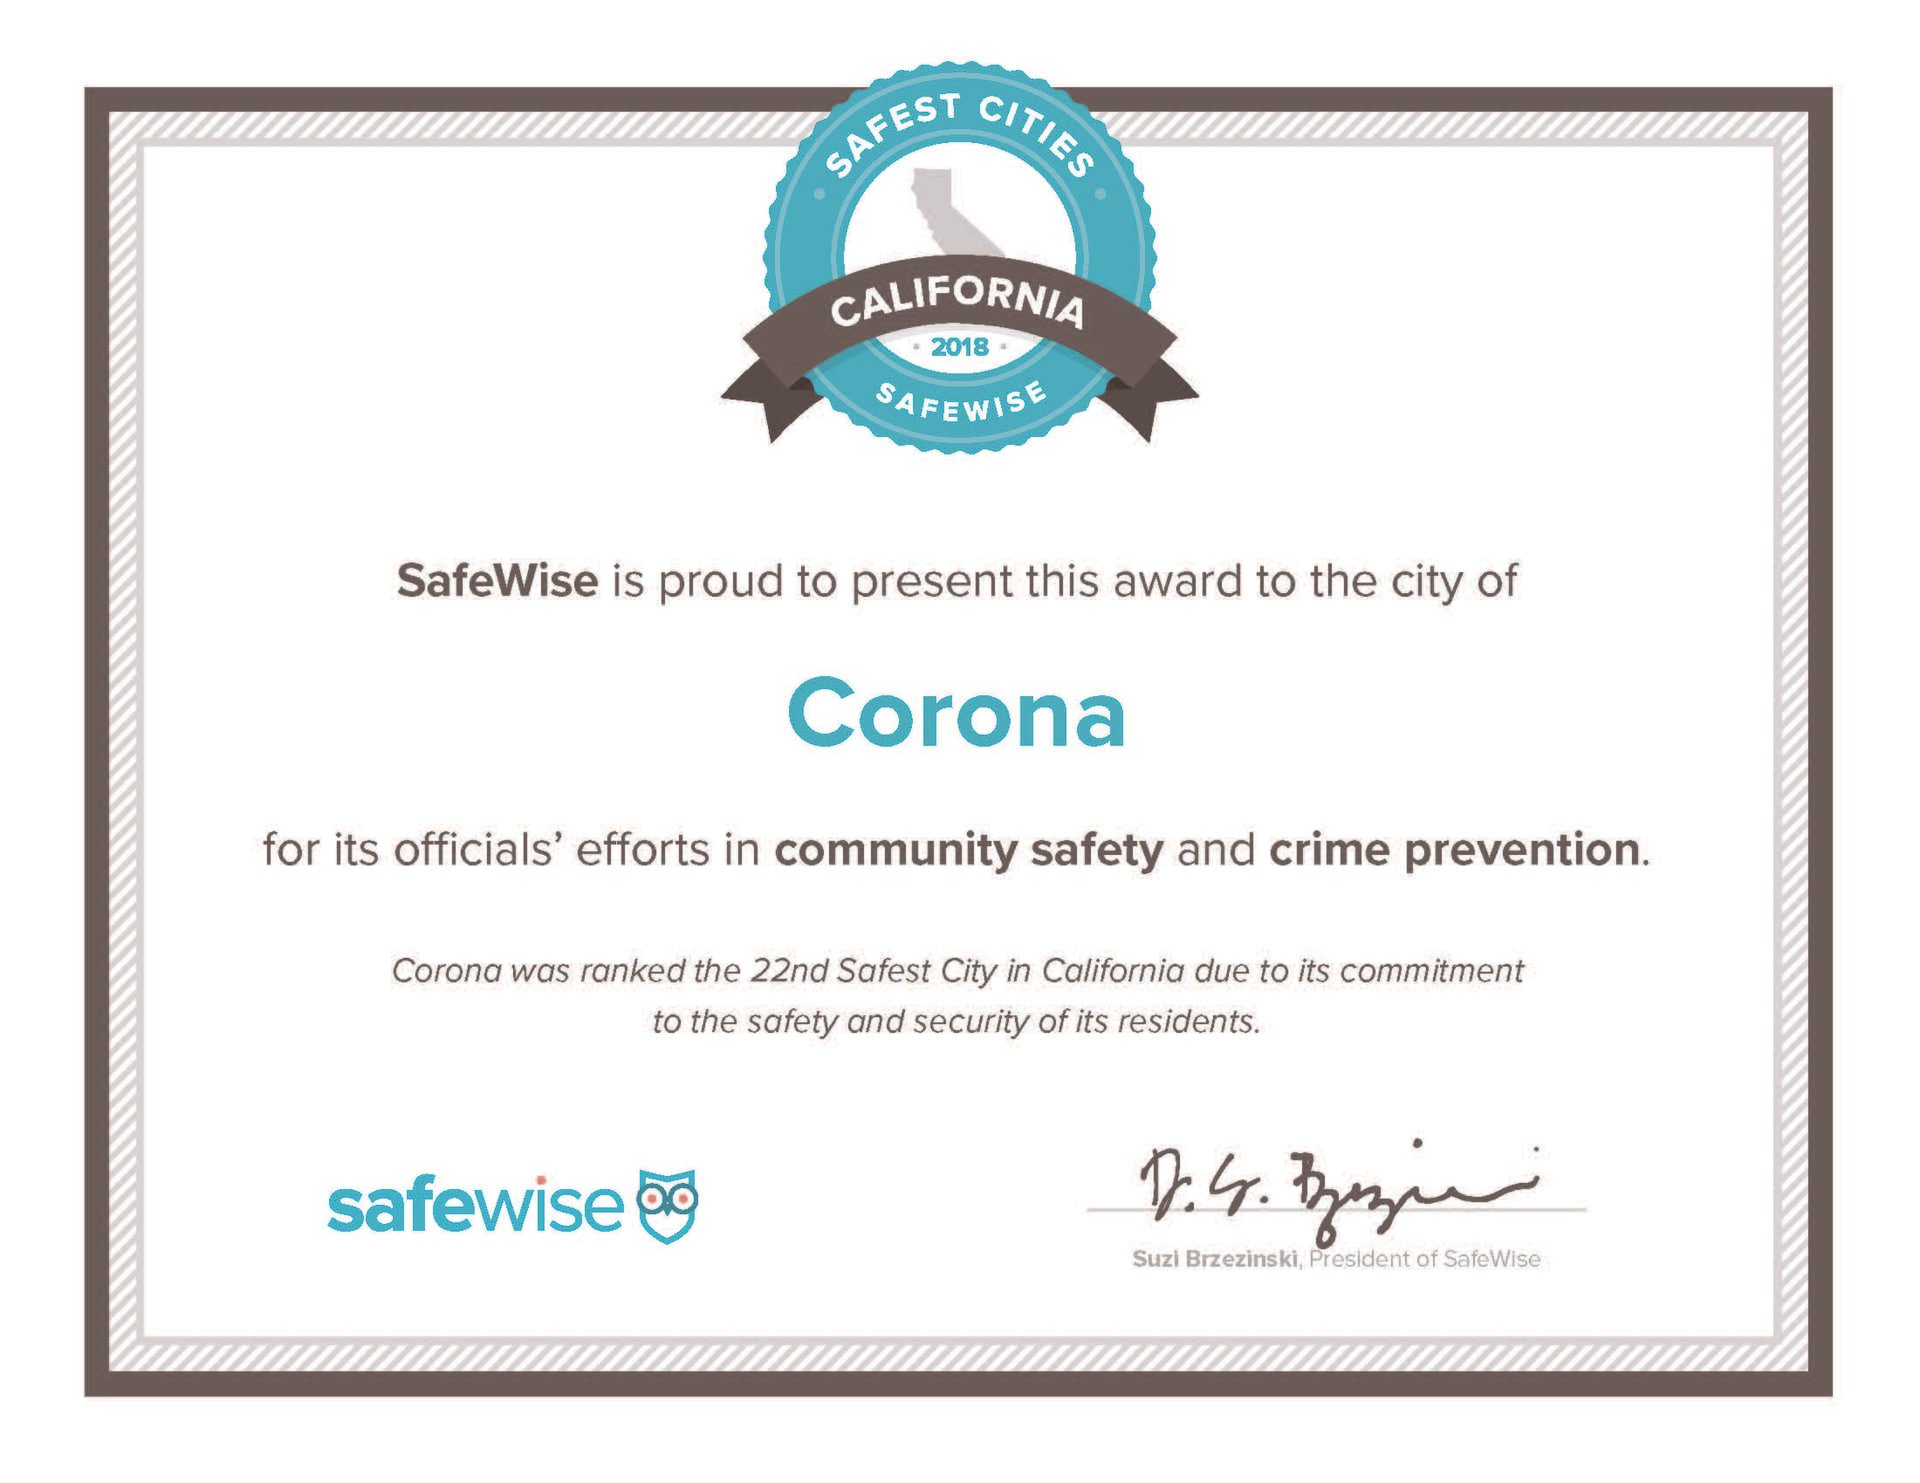 SW-Certificates-2018-California-(21)-w1920.jpg